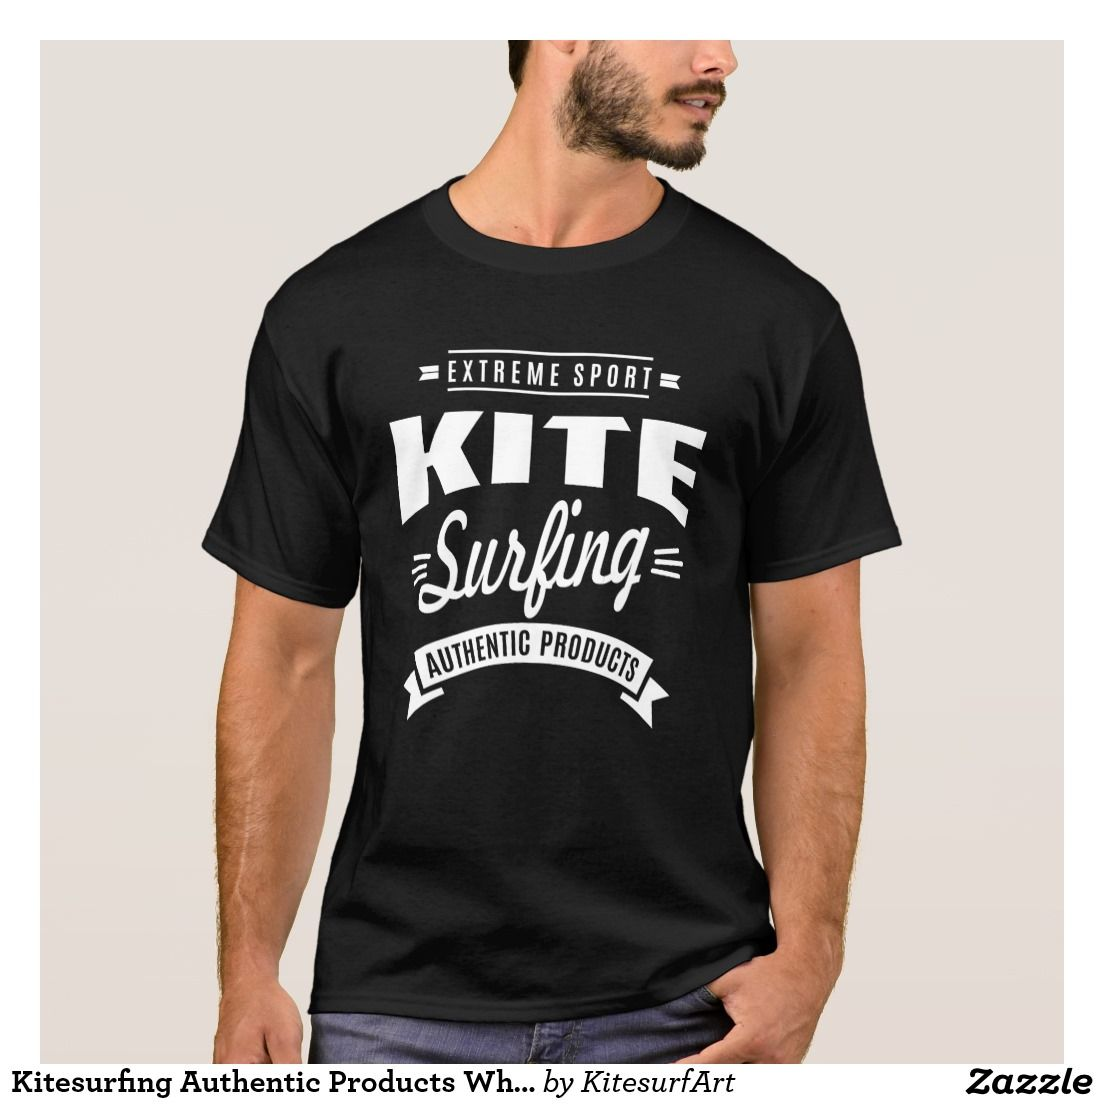 Design t shirt zazzle - Kitesurfing Authentic Products White Design Art T Shirt